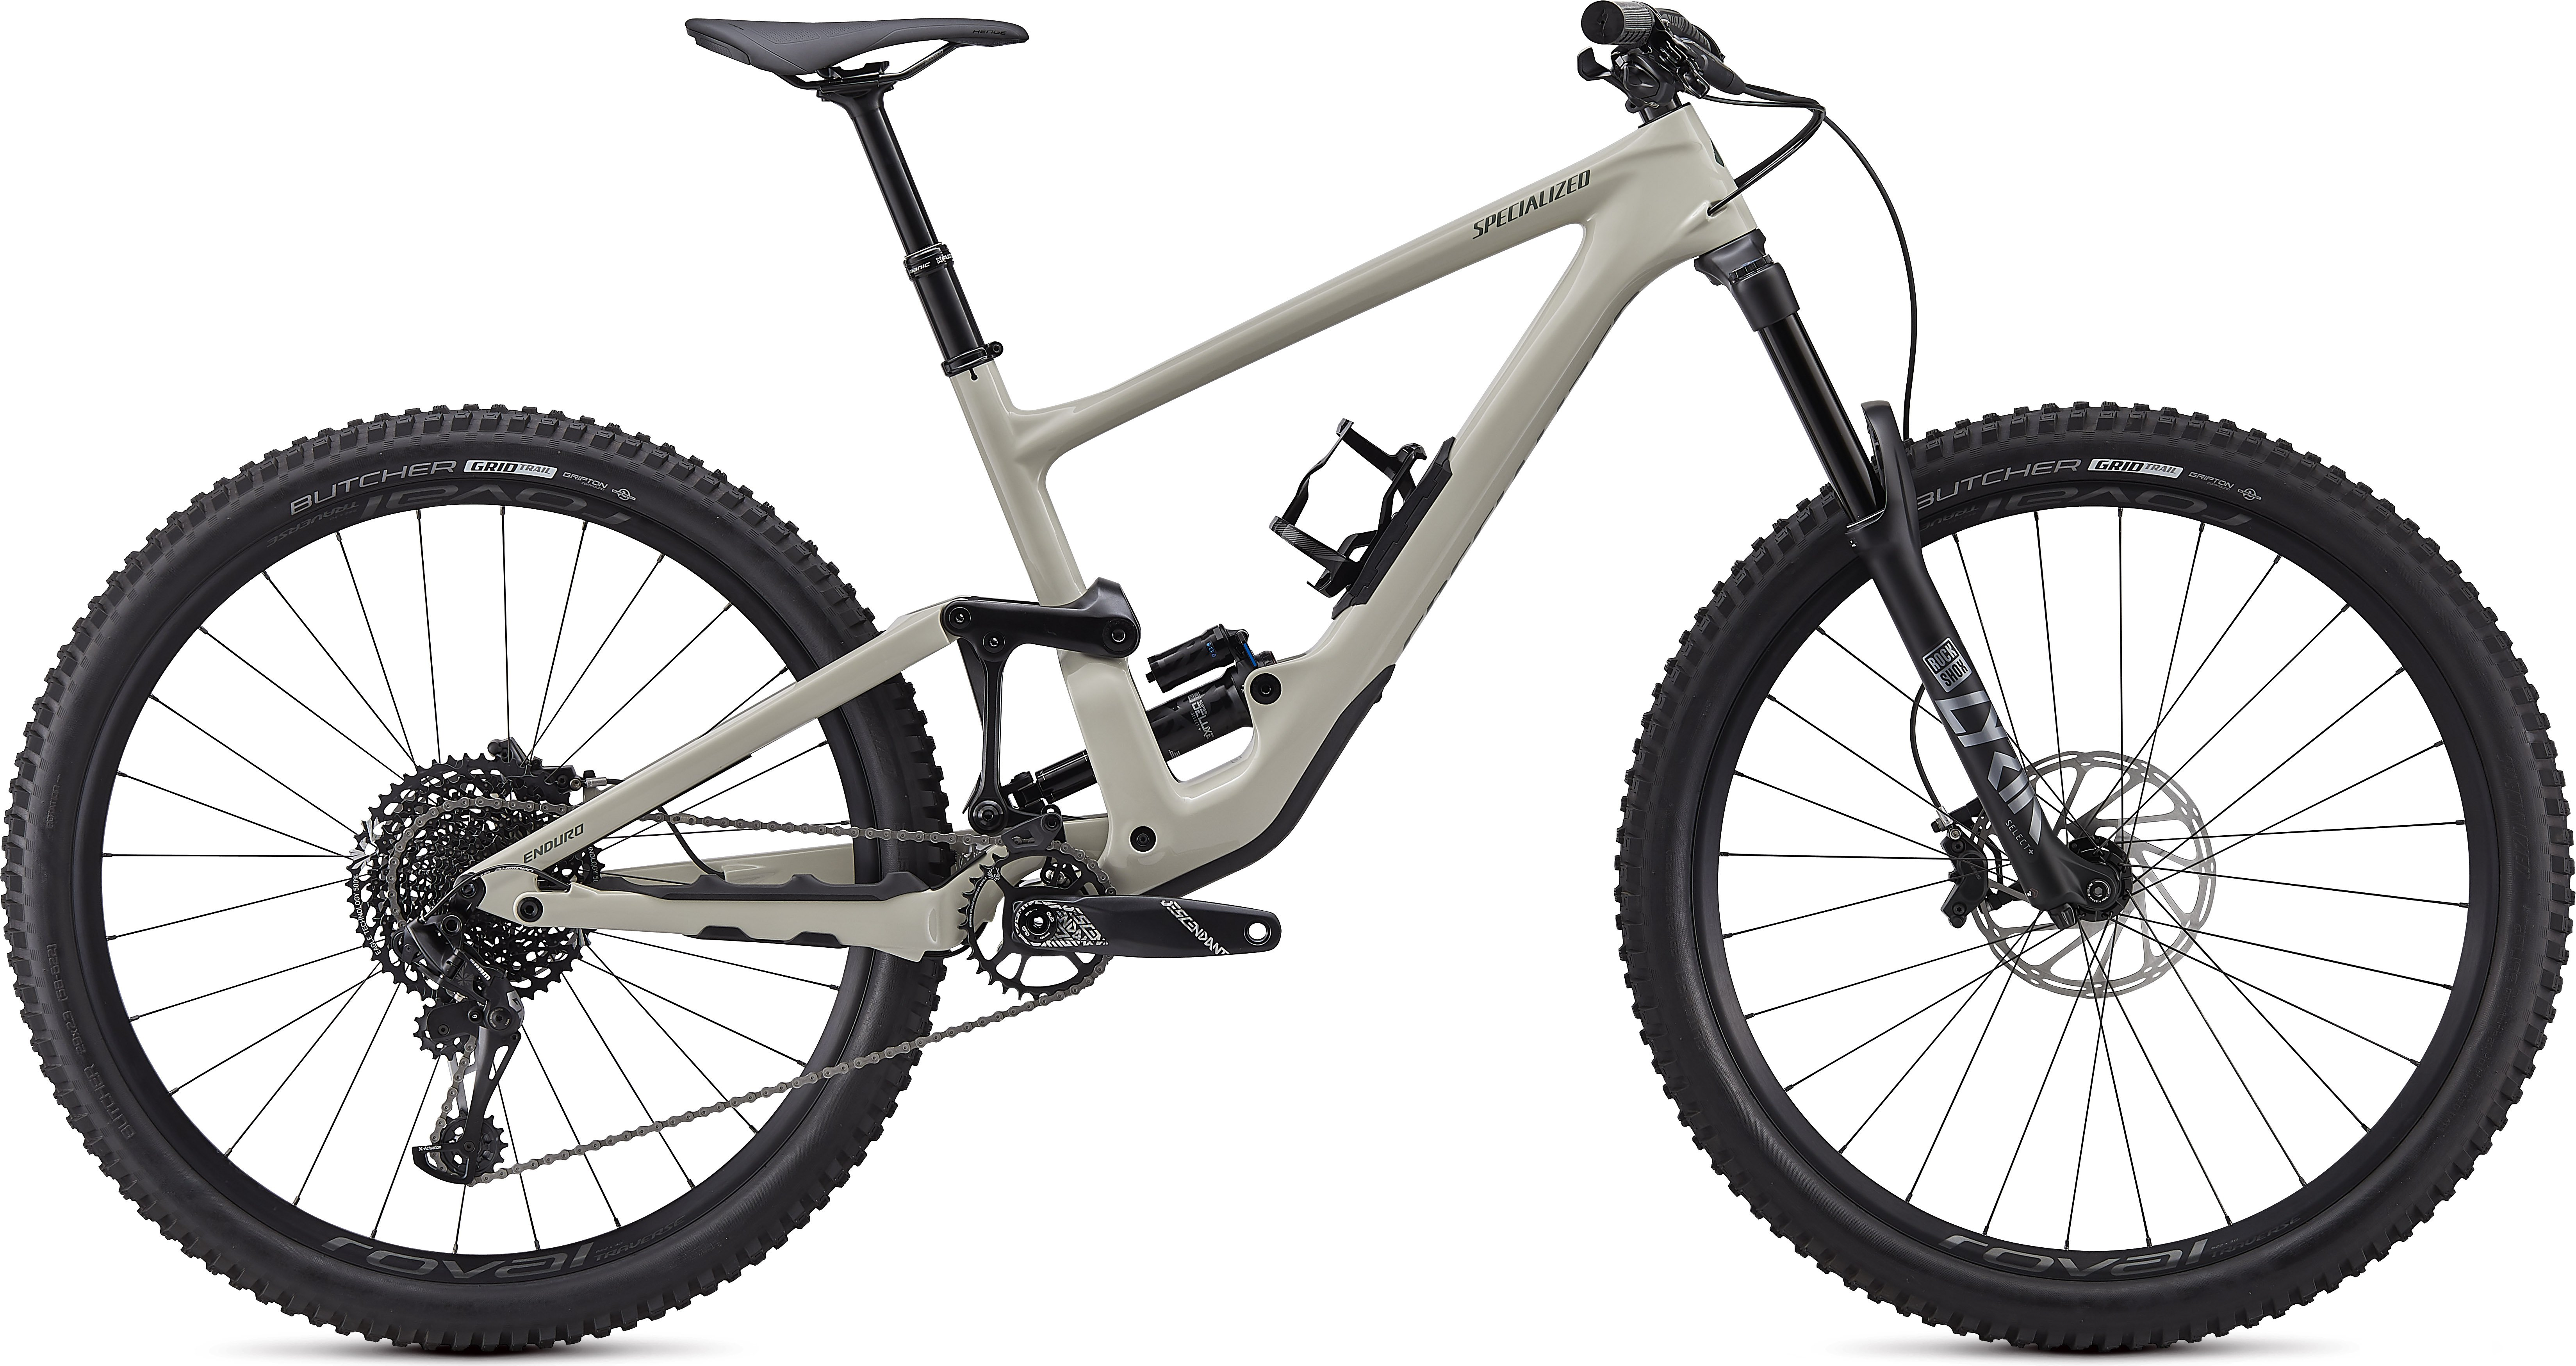 93620-40_ENDURO-ELITE-CARBON-29-WHTMTN-CARB-SGEGRN_HERO.jpg